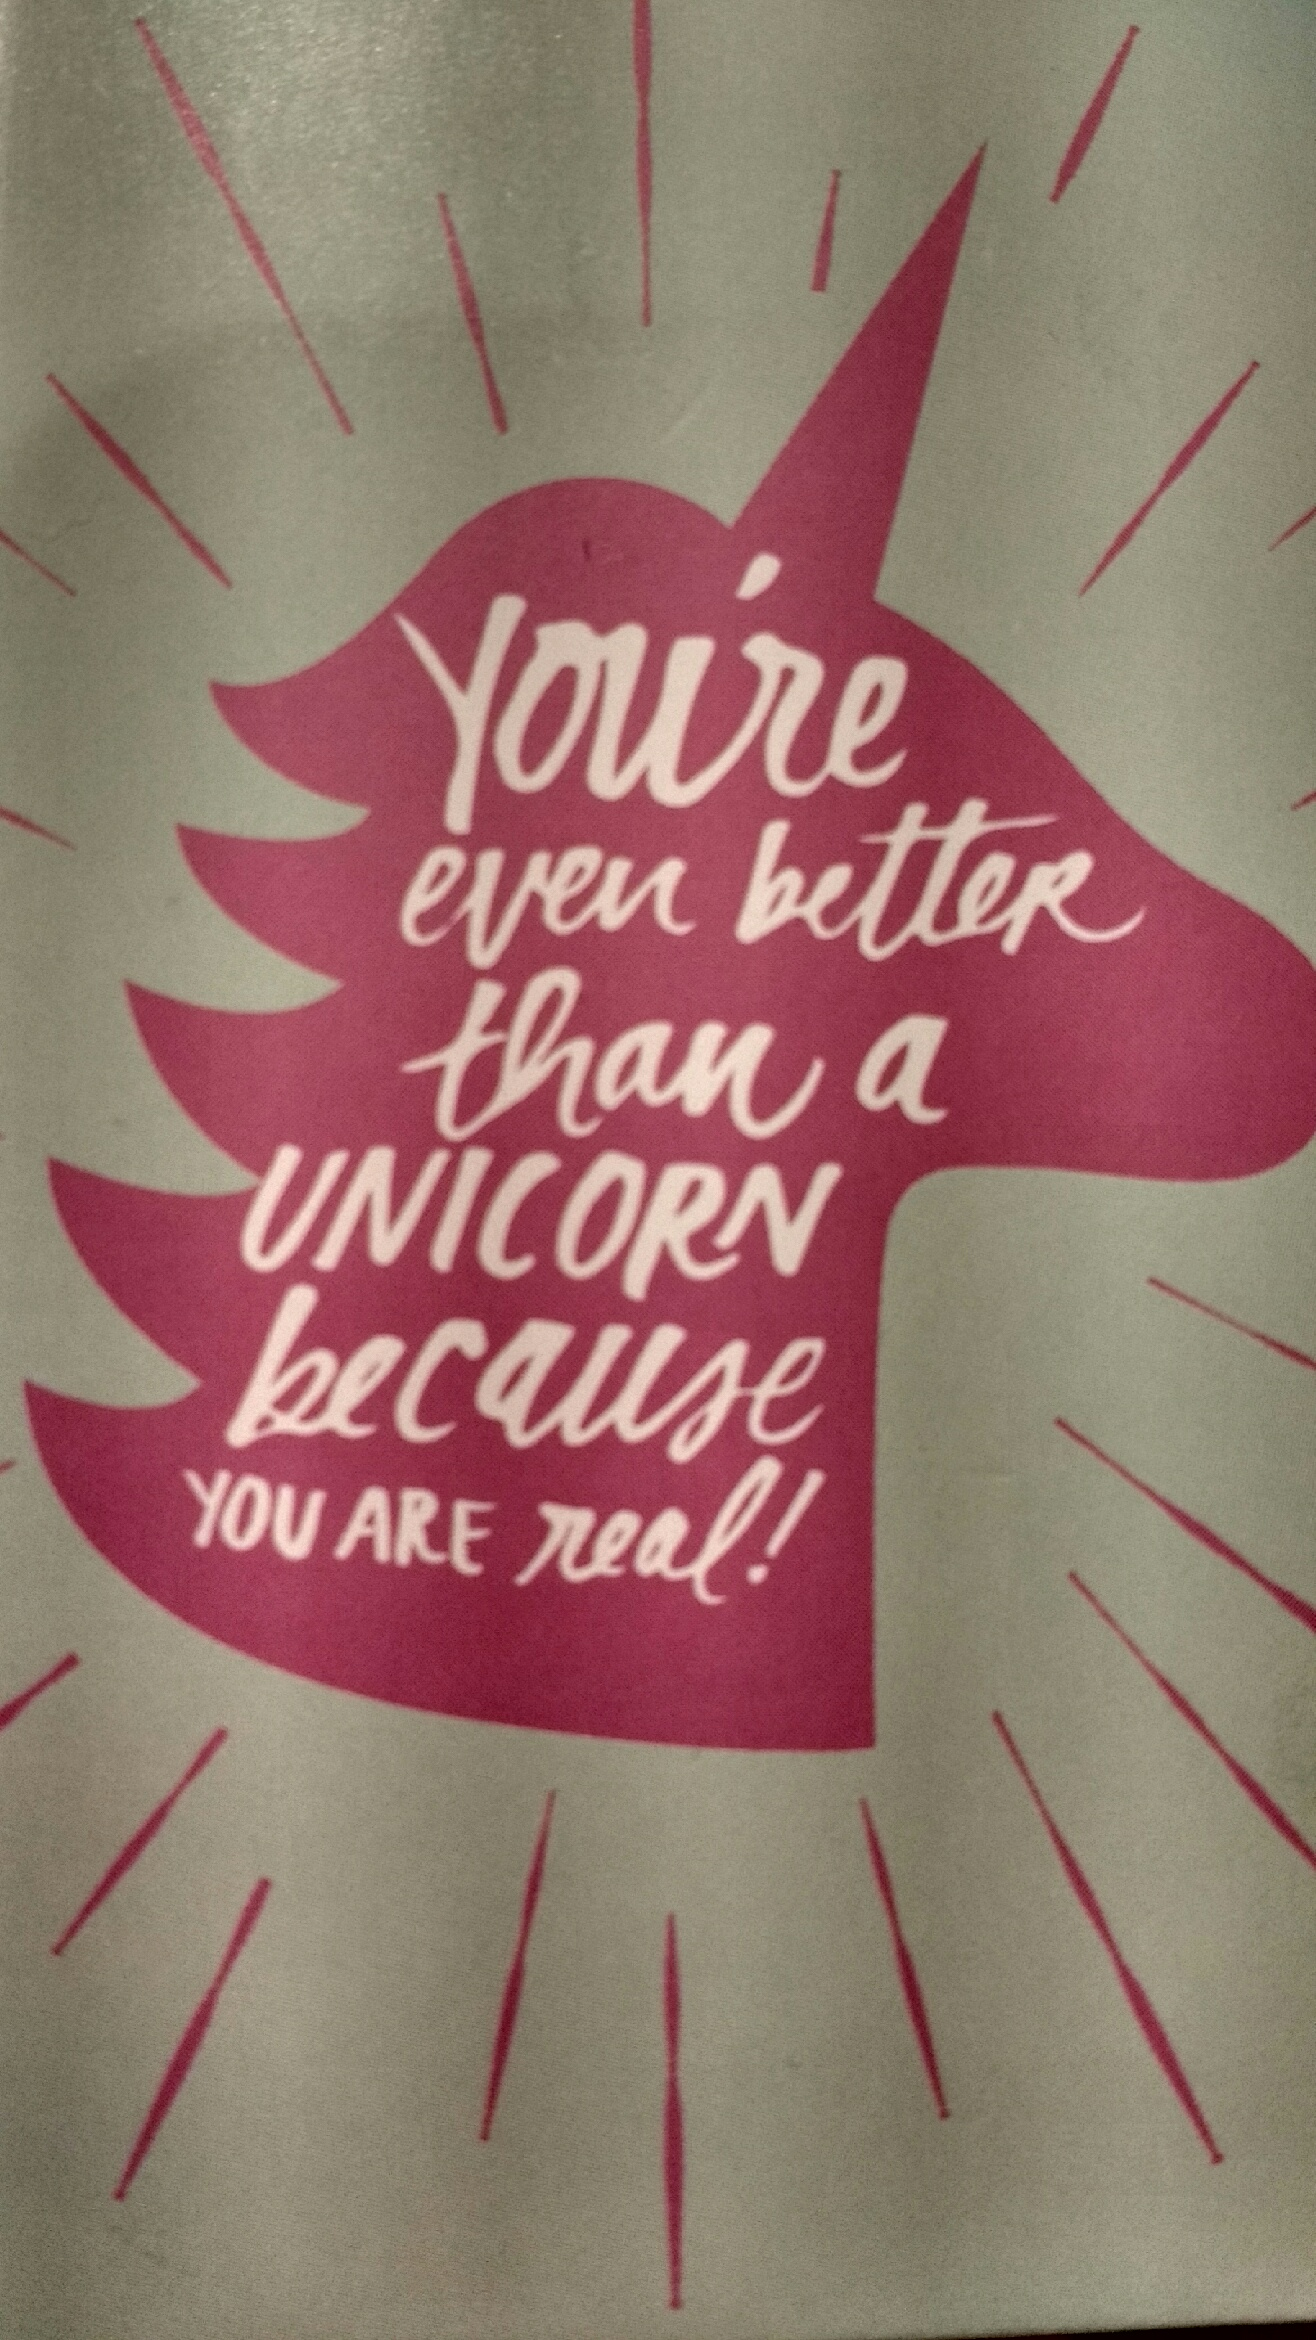 youre even better than a unicorn because you are real.jpg